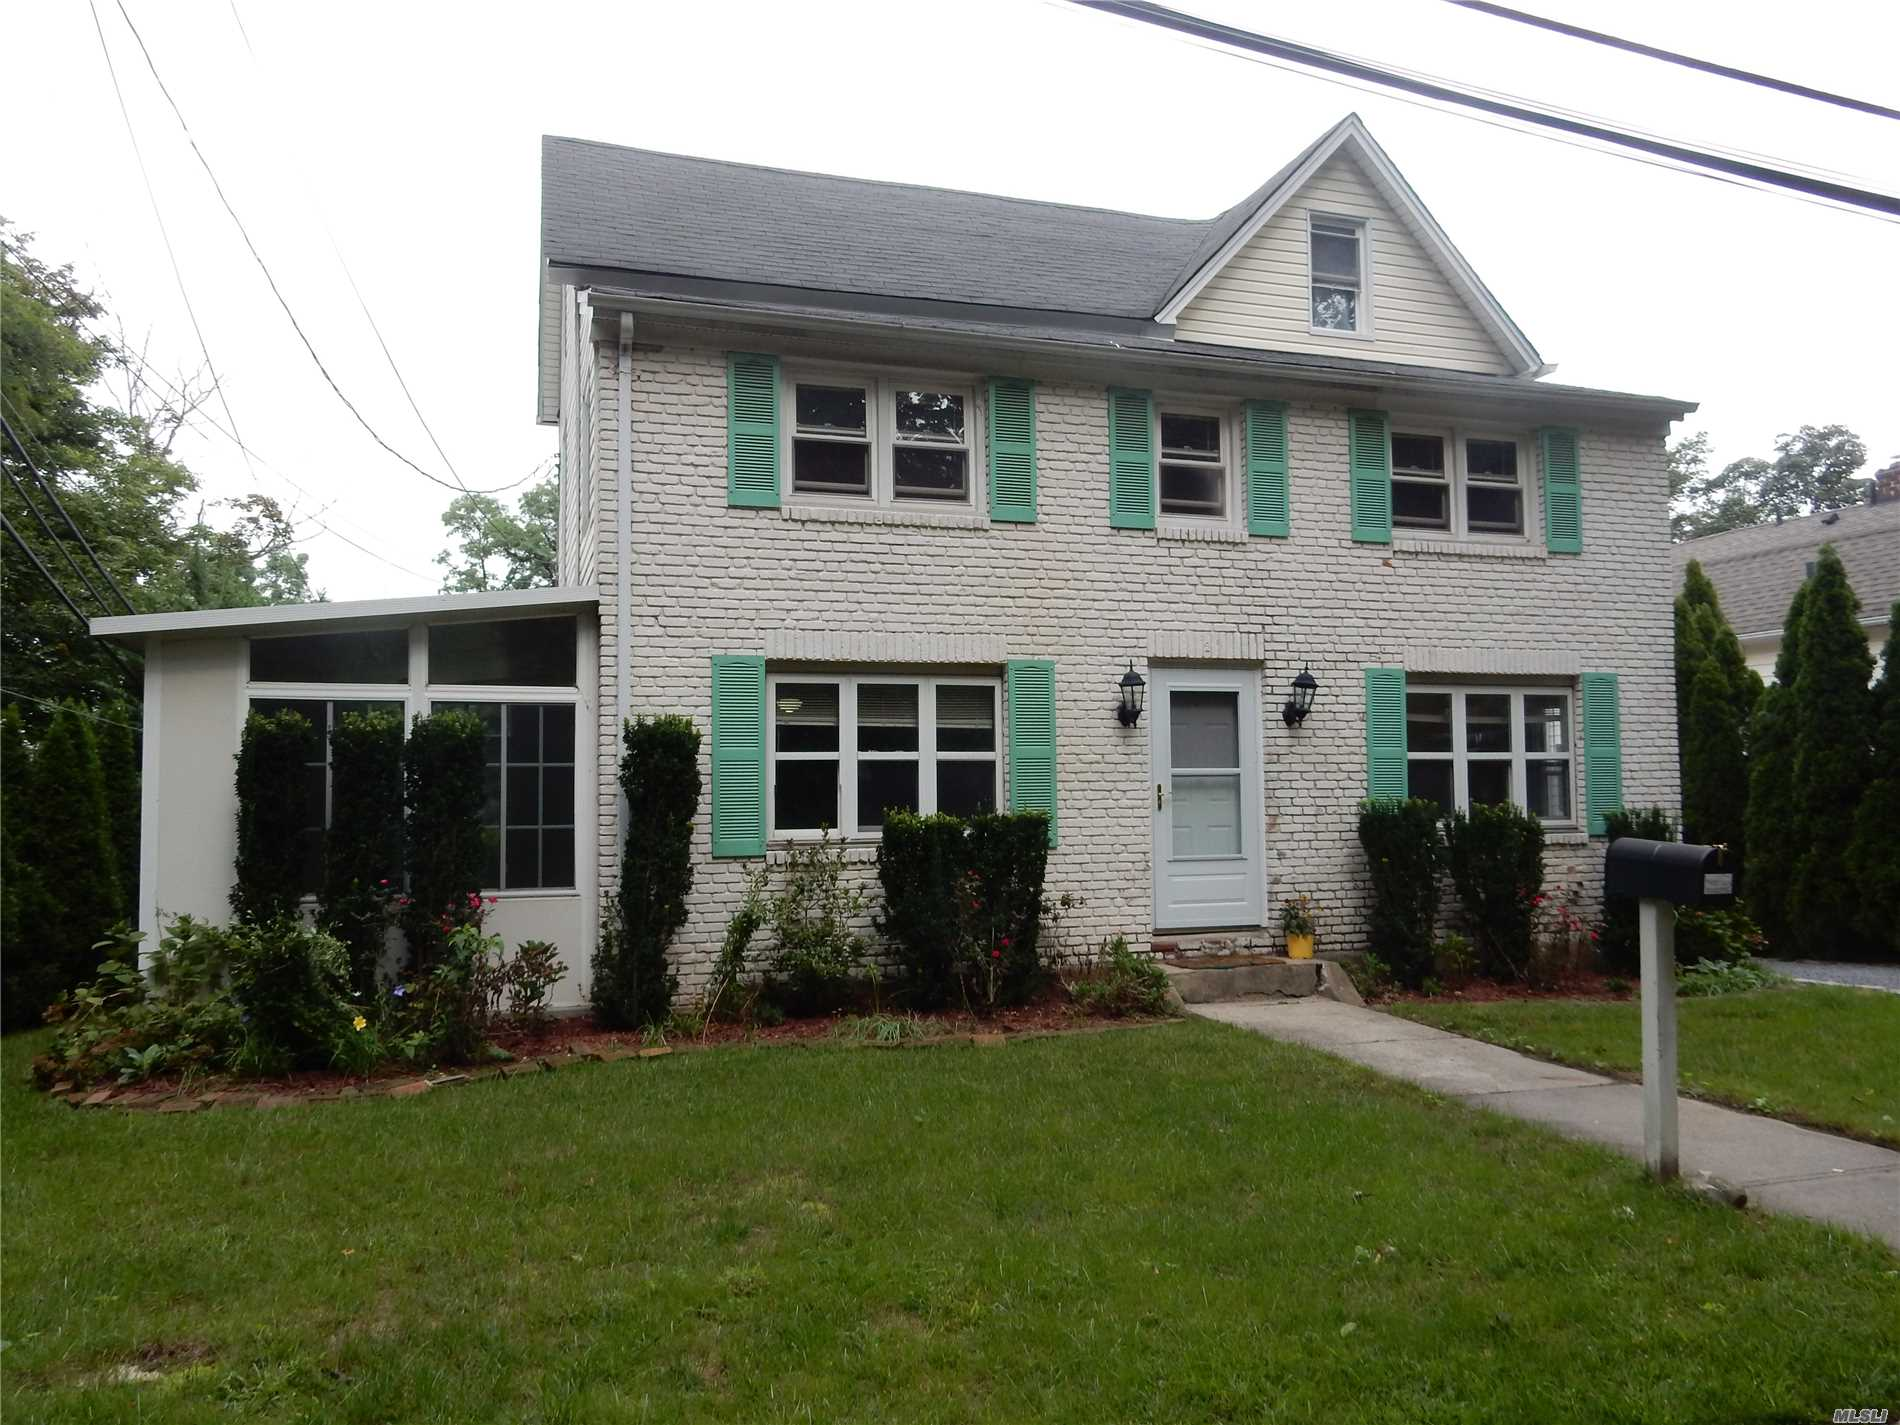 Sunlit Brick Colonial 3 Bedroom, 2 Full Baths. Living Room, Office/Den. Sunporch W/ Sliders To Yard And Outside Entrance To Deck Off Of Eat In Kitchen W/ Stainless Steel Appliances. Washer & Dryer On 2nd Floor. 2 New A/C Window Units. Beautifu Yard. Off Street Parking-Driveway For 2 Cars. Convenient To Lirr, Parks, Library, Town, Etc.